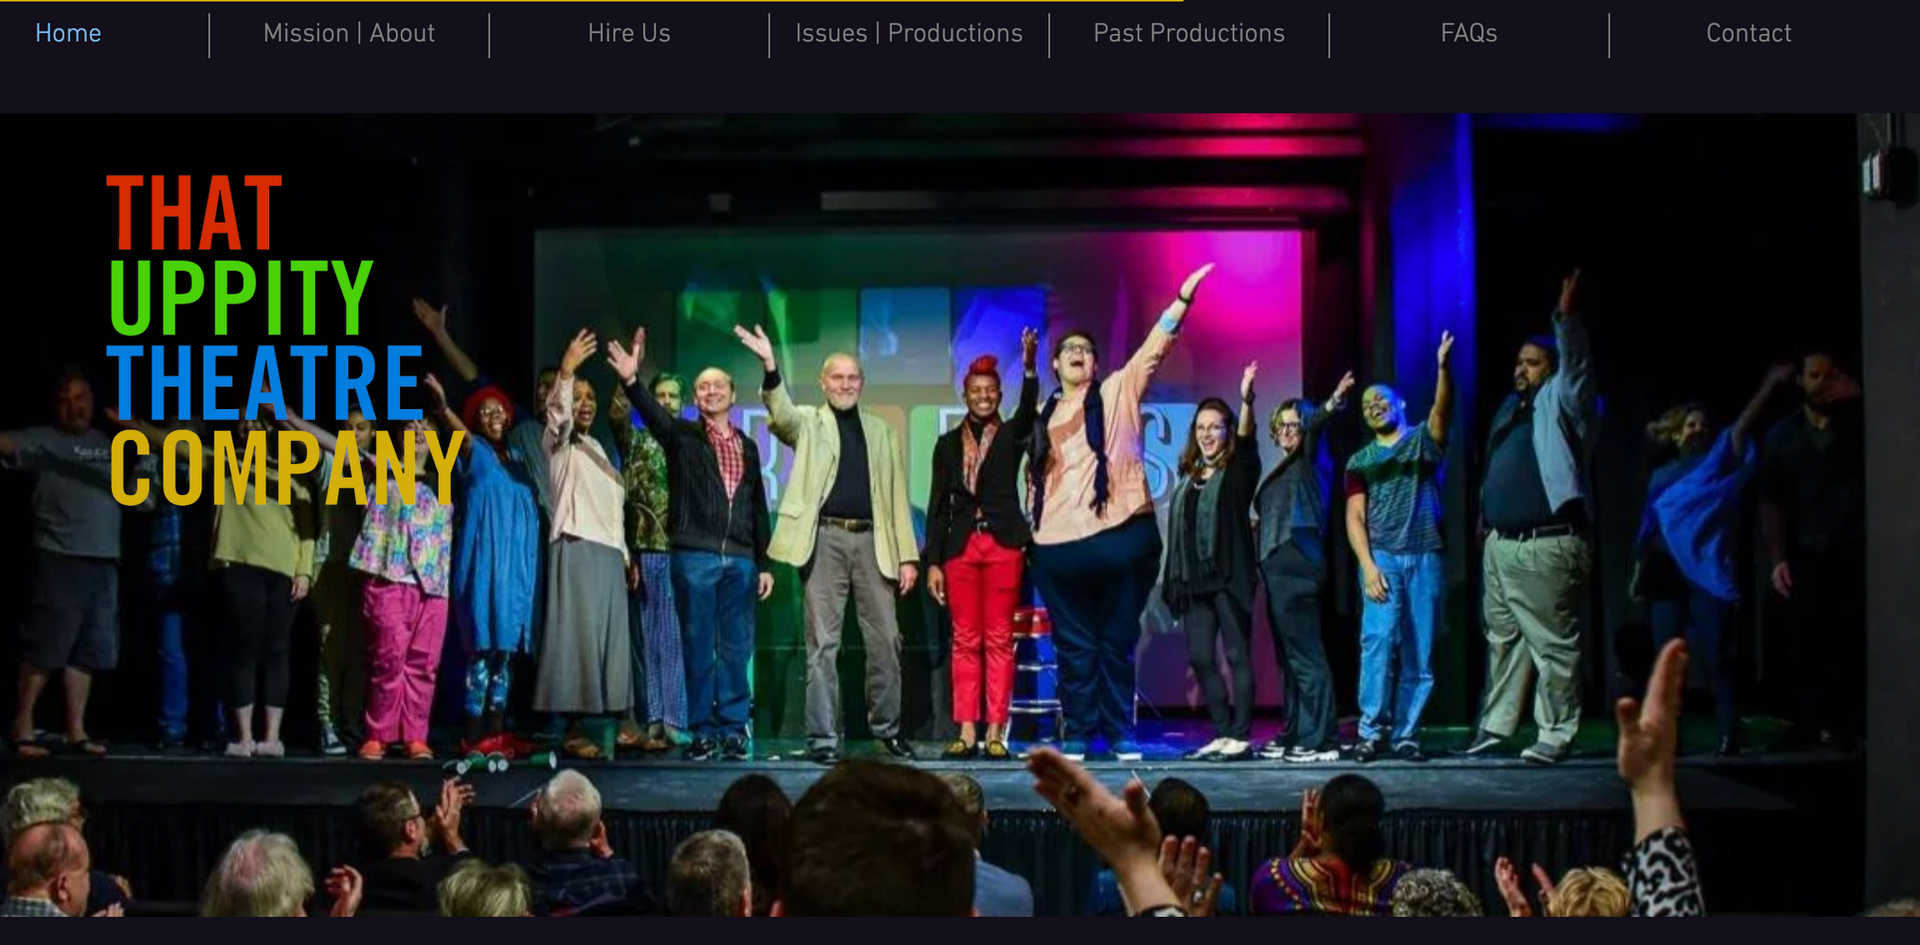 That Uppity Theatre Company Home Page